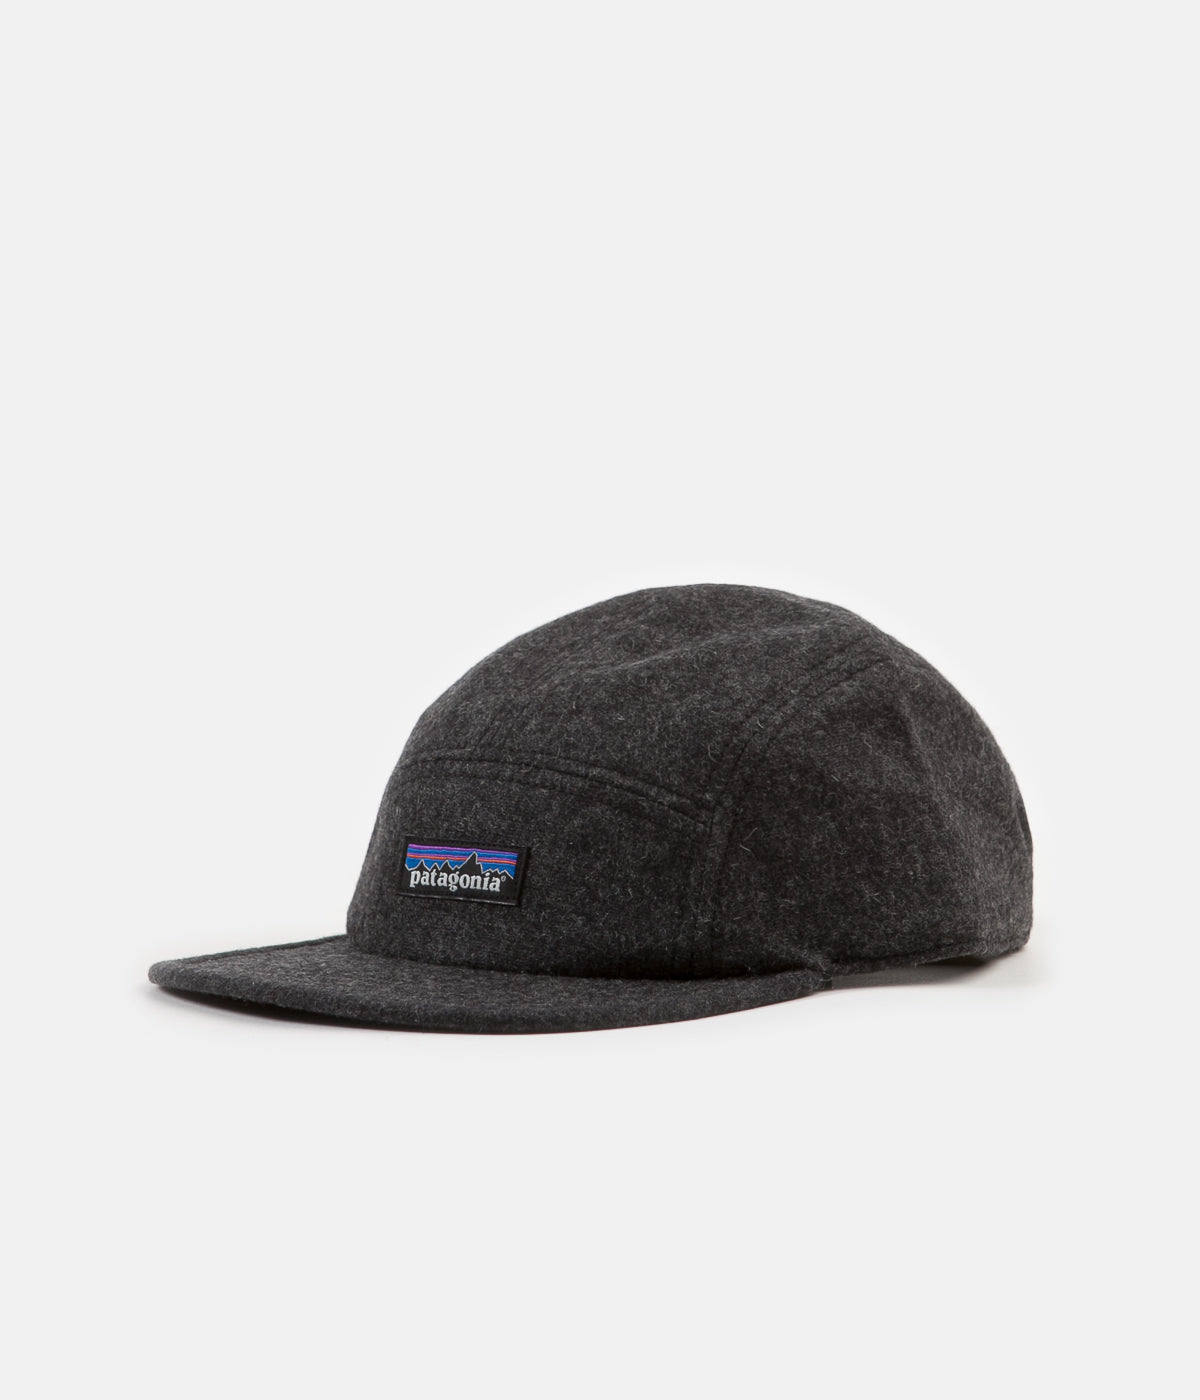 5d70ea66 Patagonia Recycled Wool Cap - Forge Grey | Flatspot